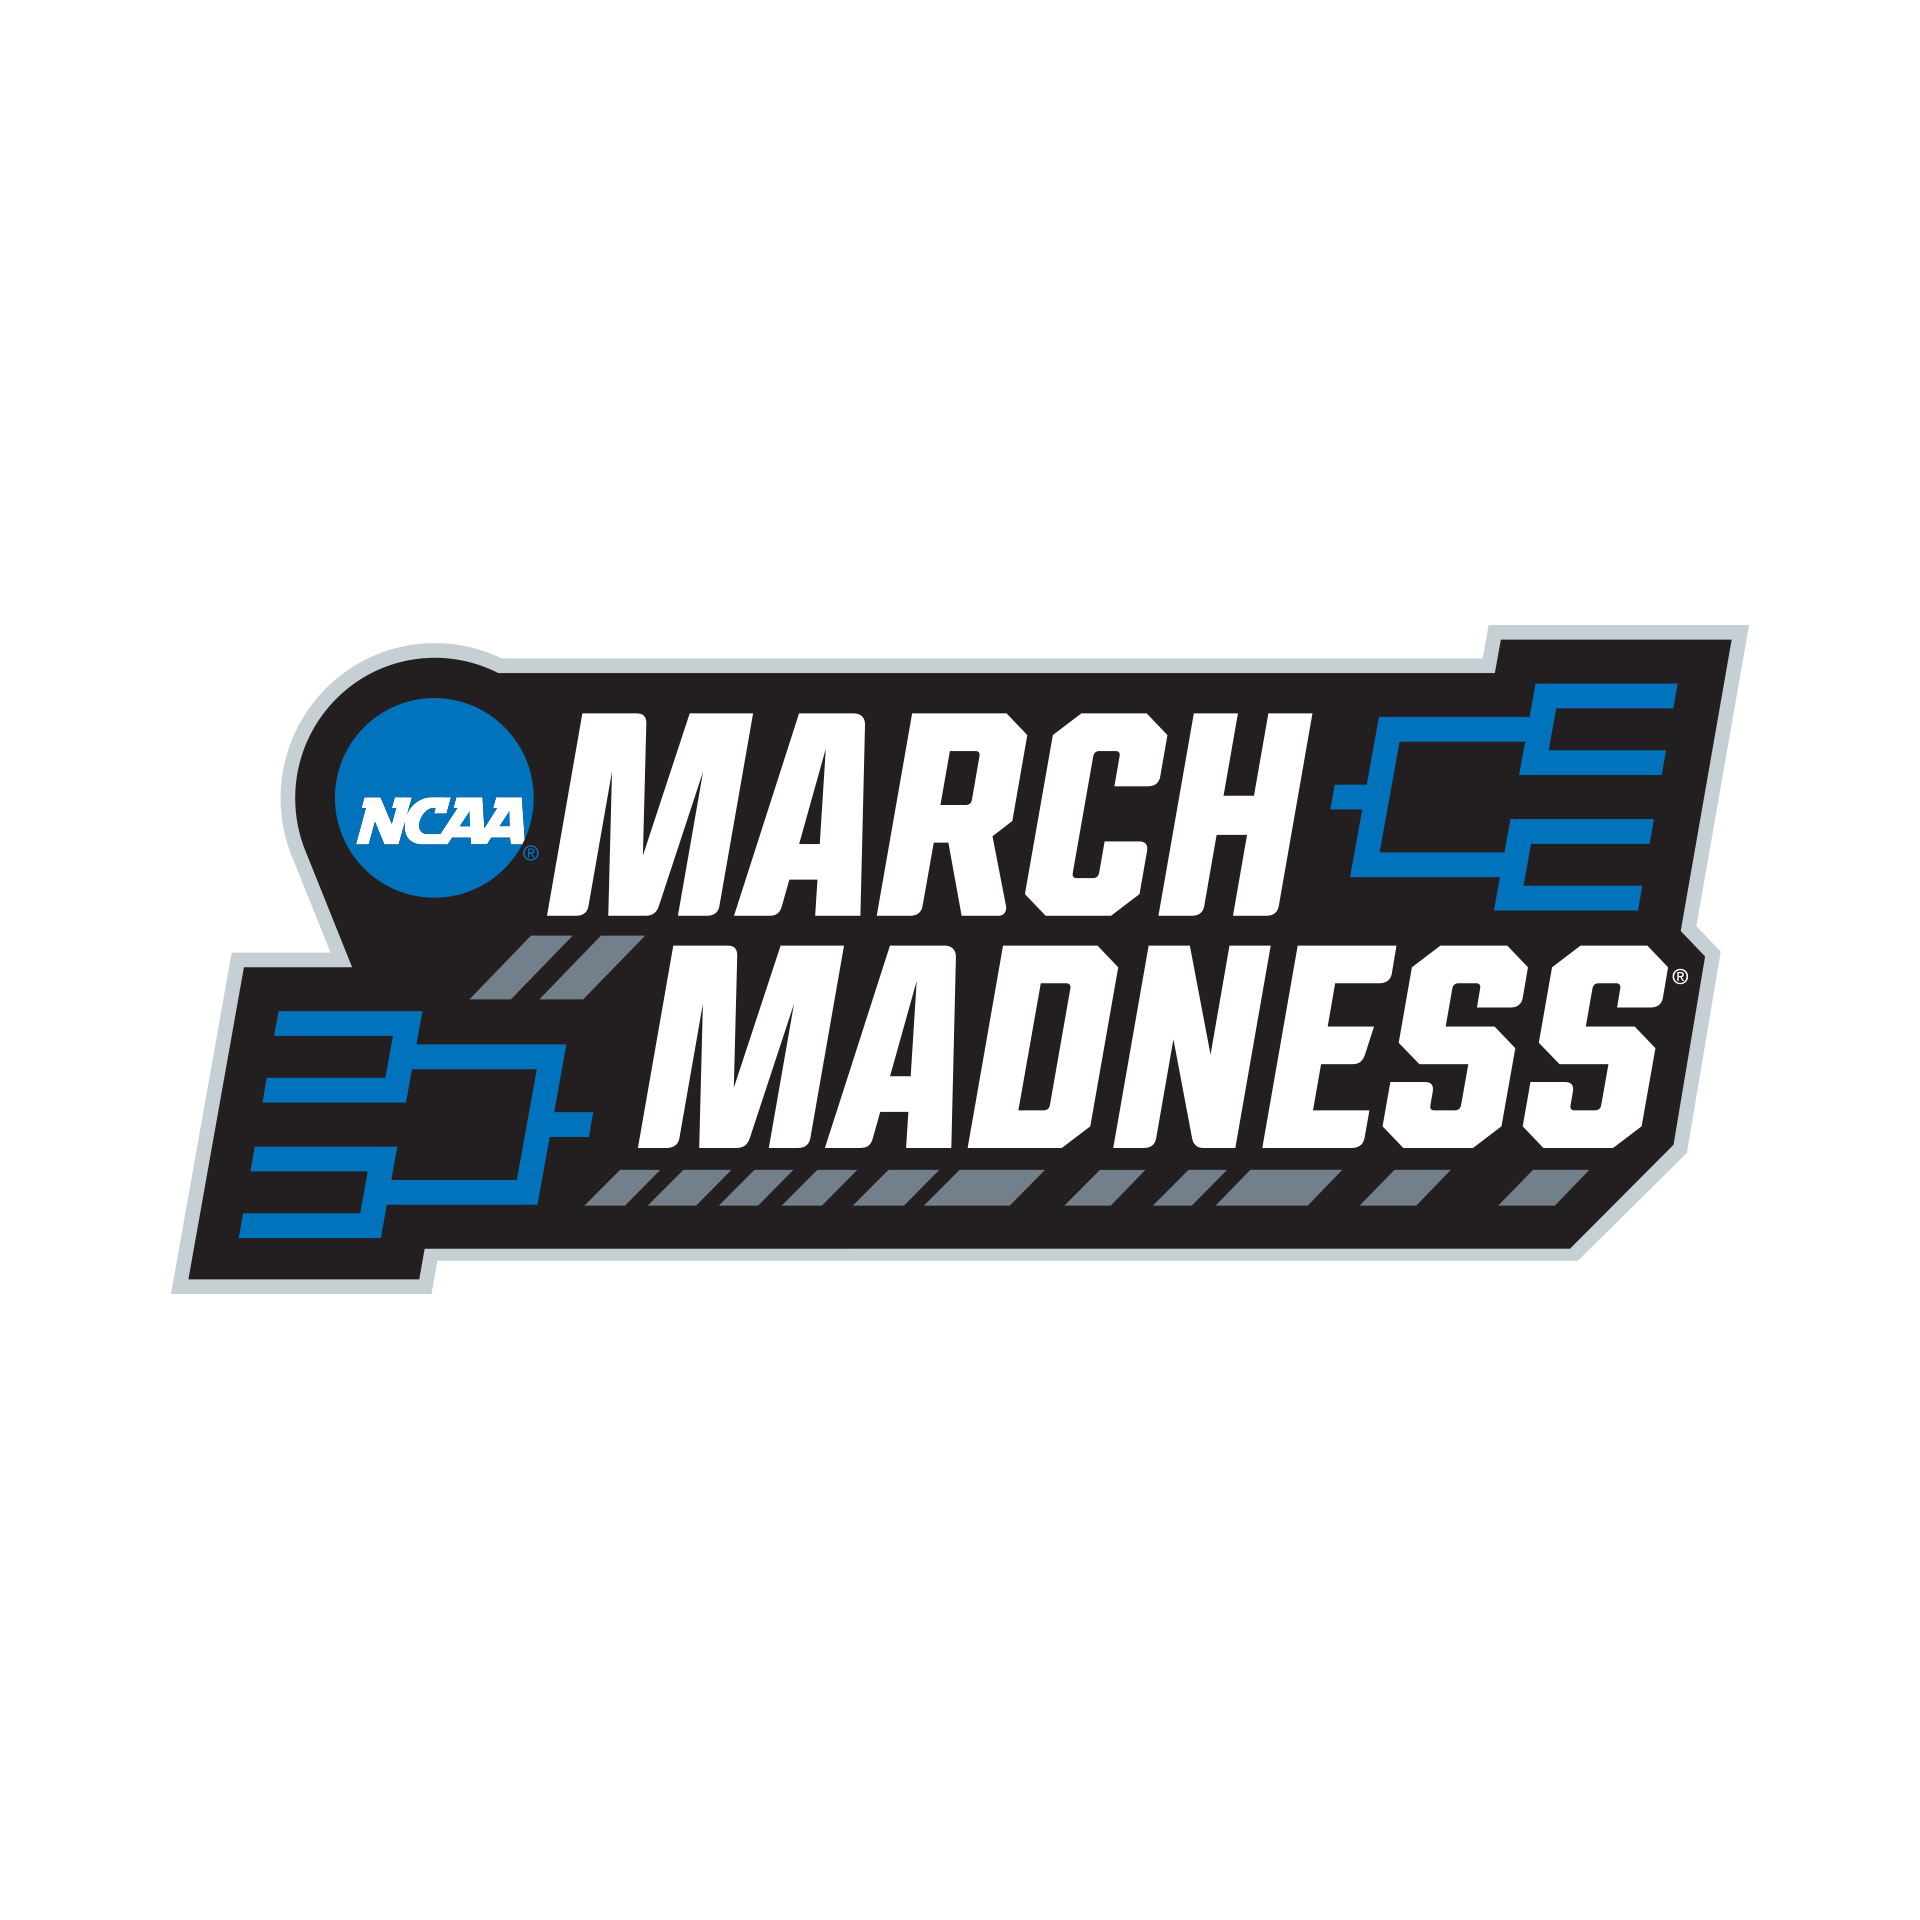 marchmadness's avatar